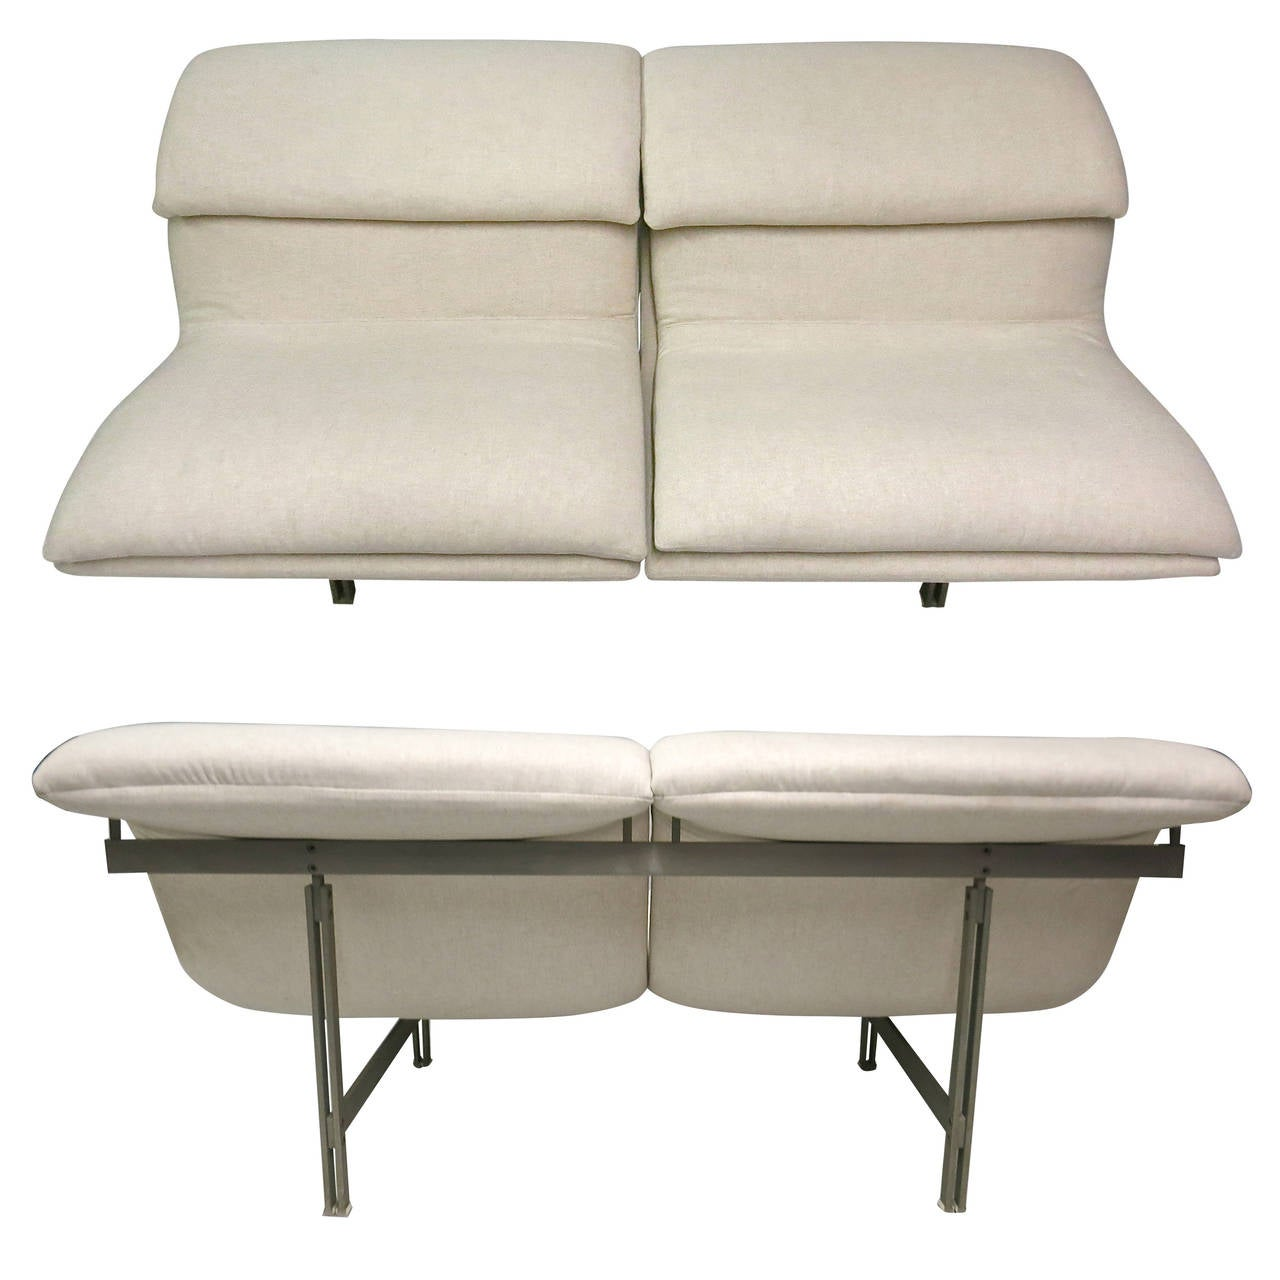 Pair of Two-Seater Sofas by Saporiti Fabricated by Saporiti Italia, Circa 1970